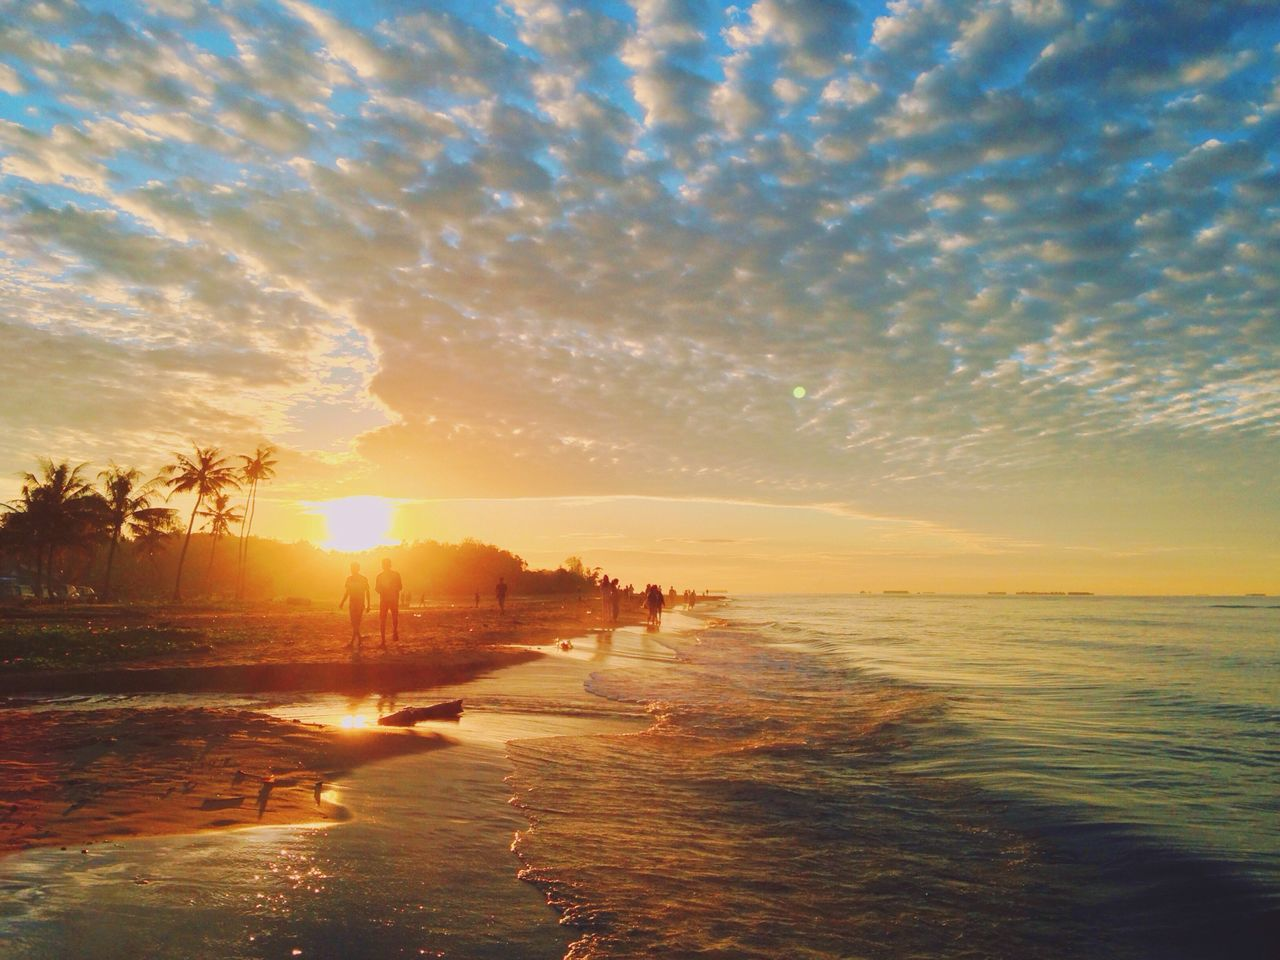 sunset, sun, sea, water, sky, scenics, beauty in nature, tranquil scene, orange color, tranquility, sunlight, nature, beach, cloud - sky, idyllic, silhouette, outdoors, reflection, horizon over water, no people, vacations, wave, tree, day